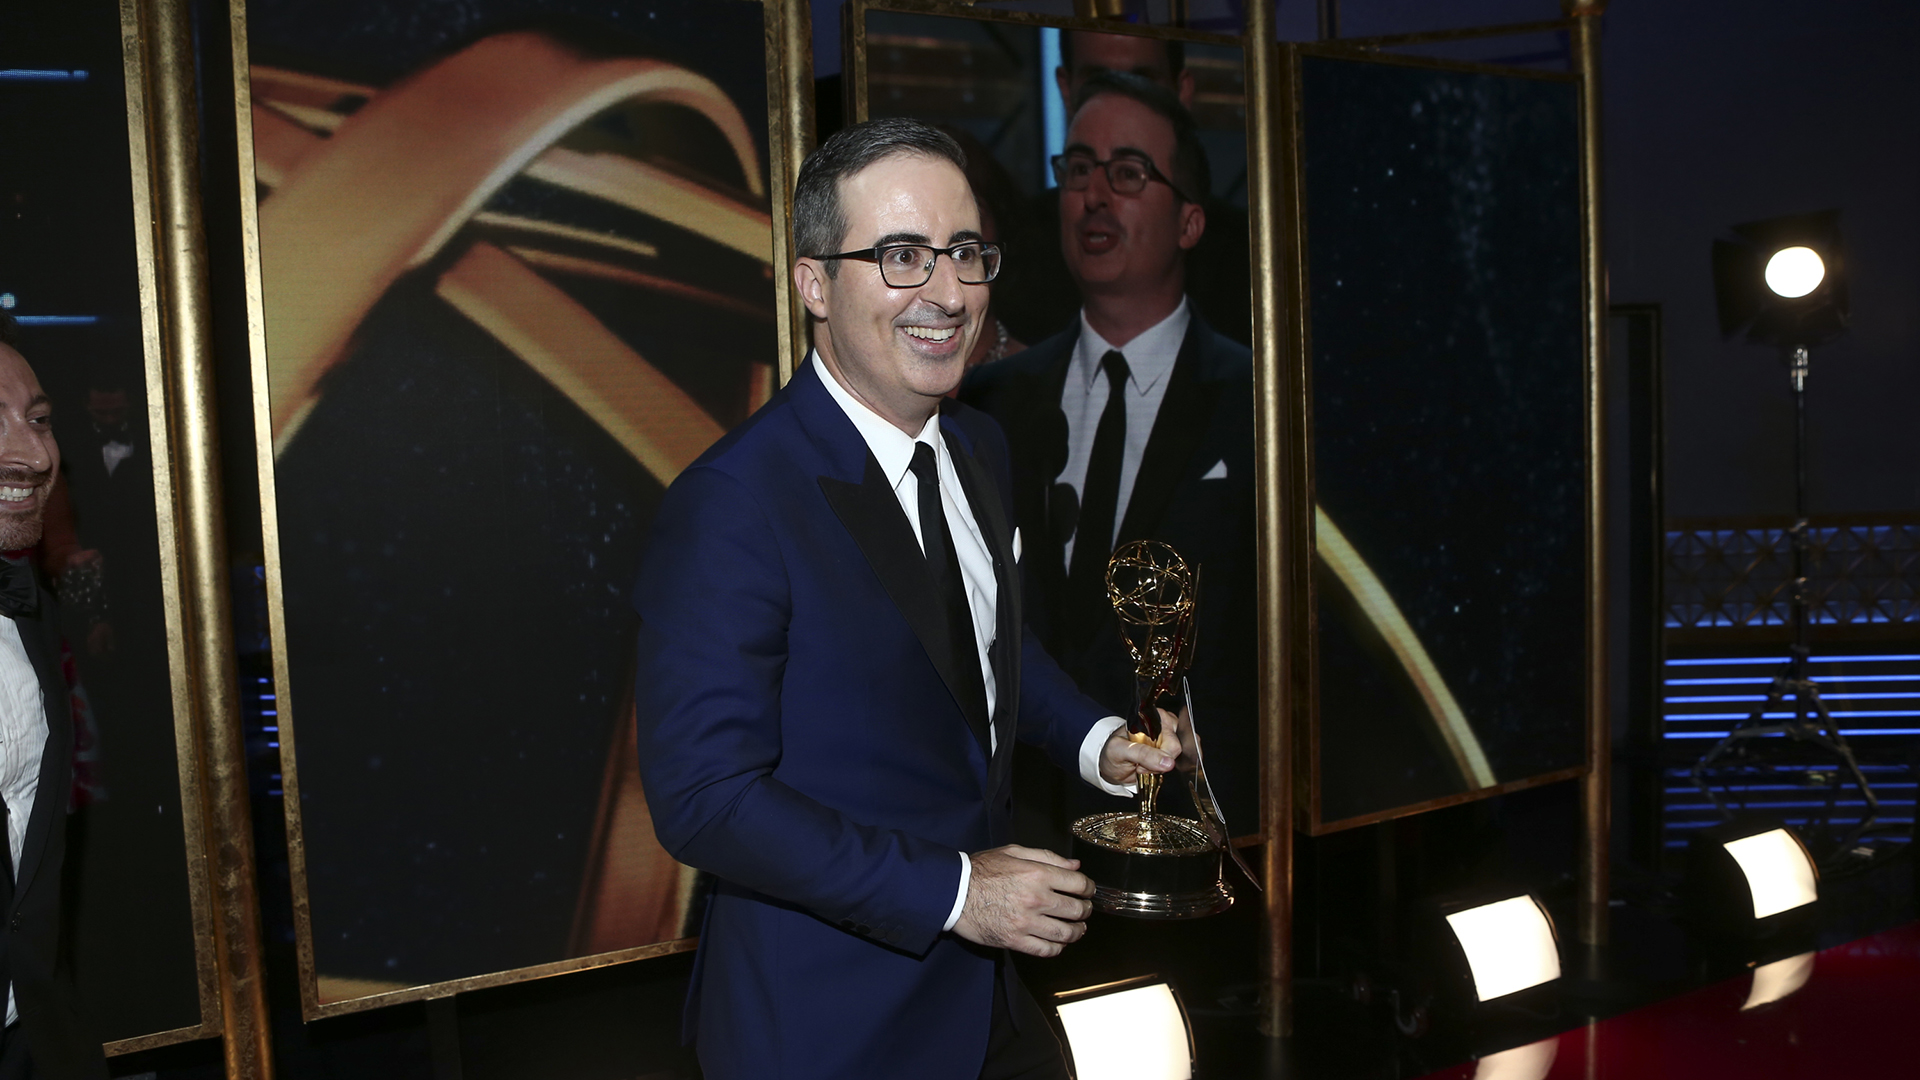 Last Week Tonight With John Oliver wins Outstanding Writing for a Variety Series at The 69th Emmy Awards.